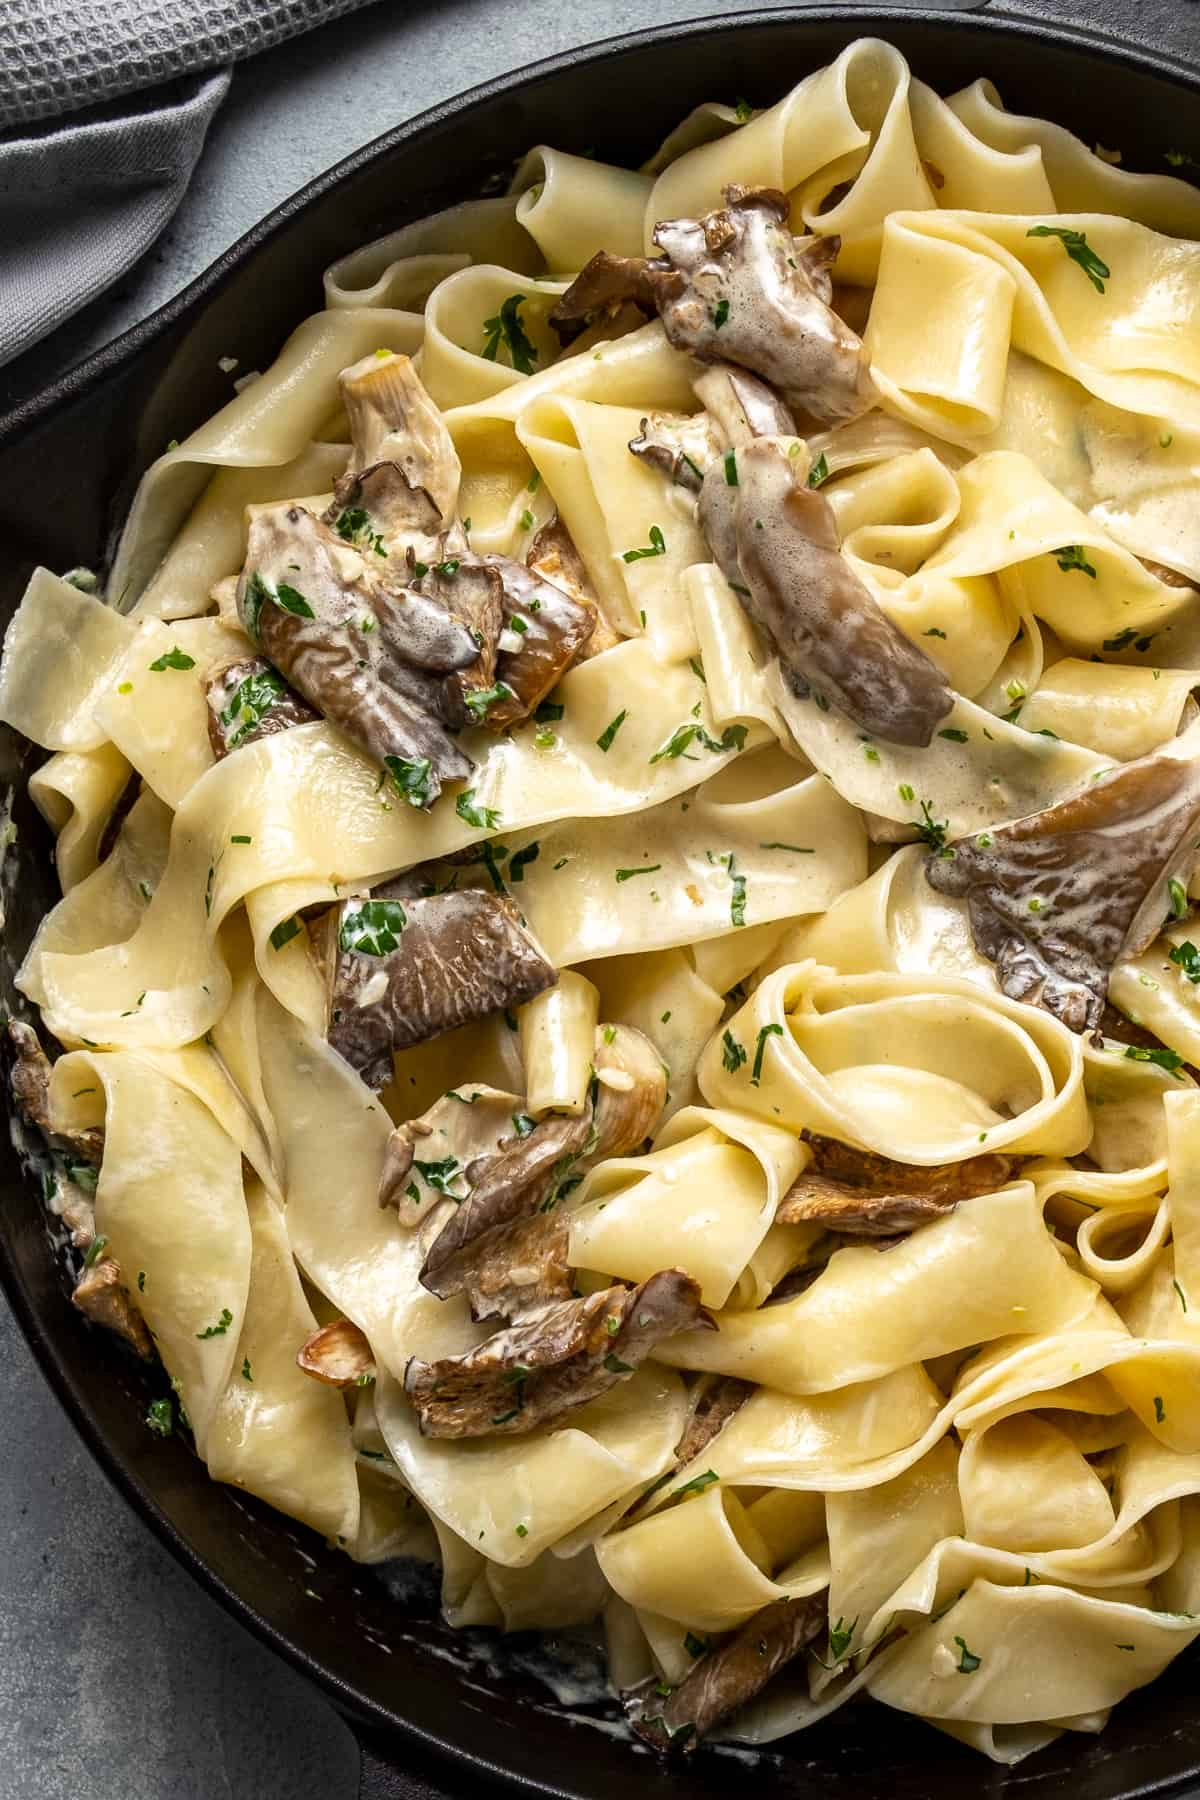 Pasta with creamy oyster mushroom sauce in a cast iron pan.